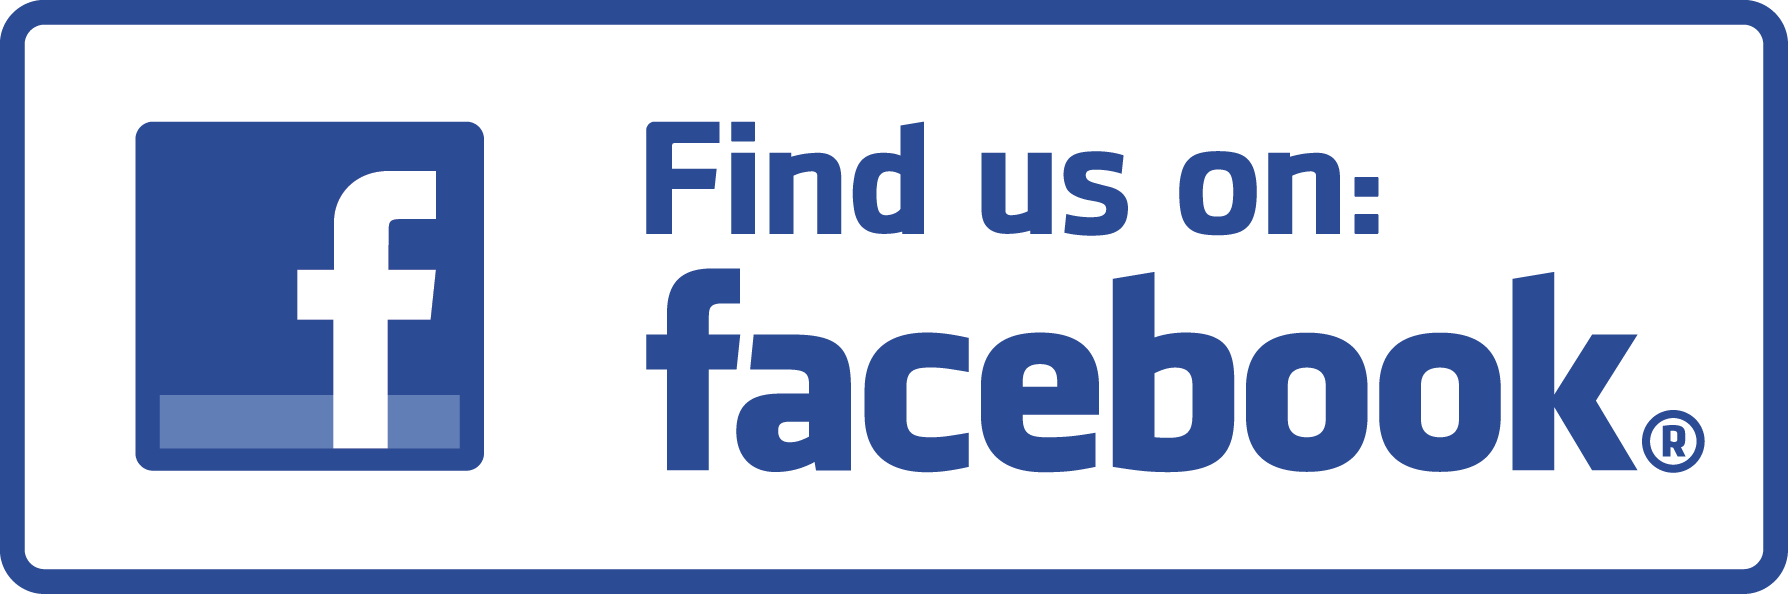 BJ Towing in Adelaide is on Facebook